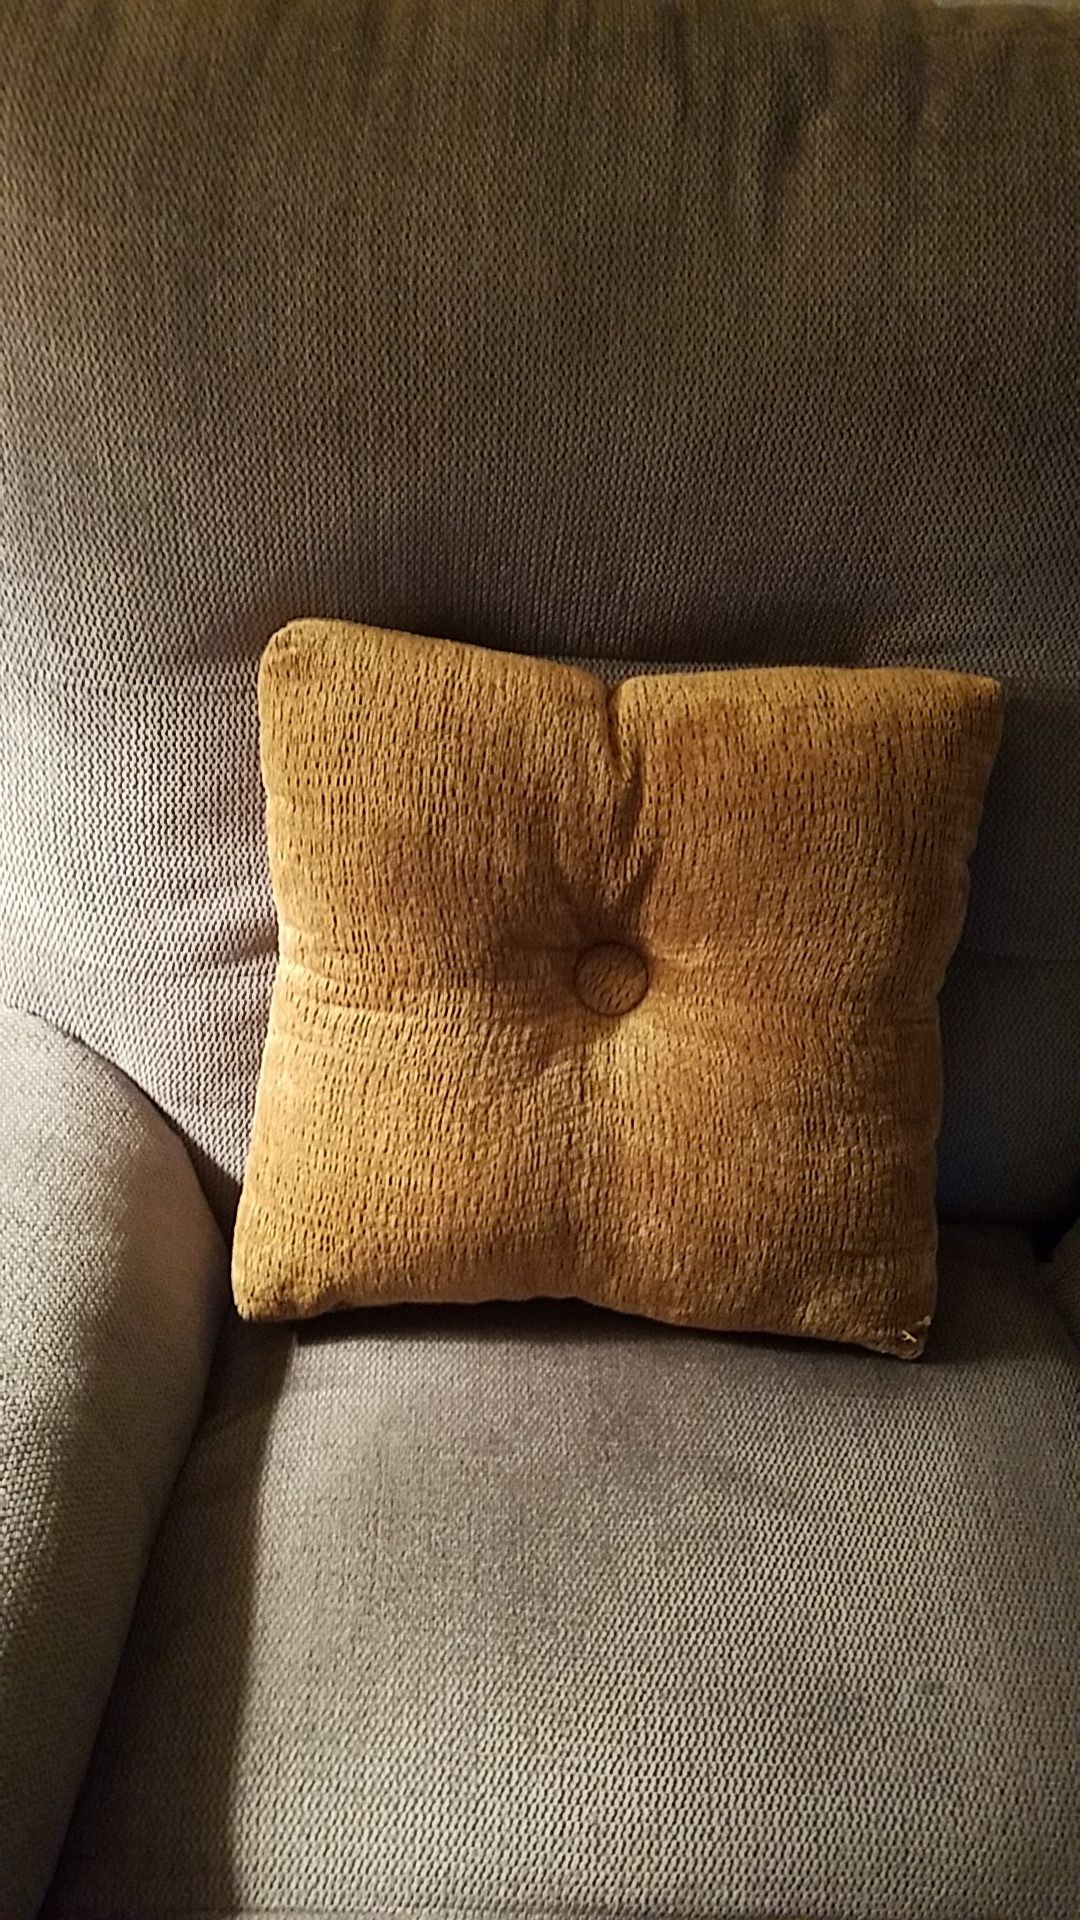 Beige Pillow Smoke and pet free home